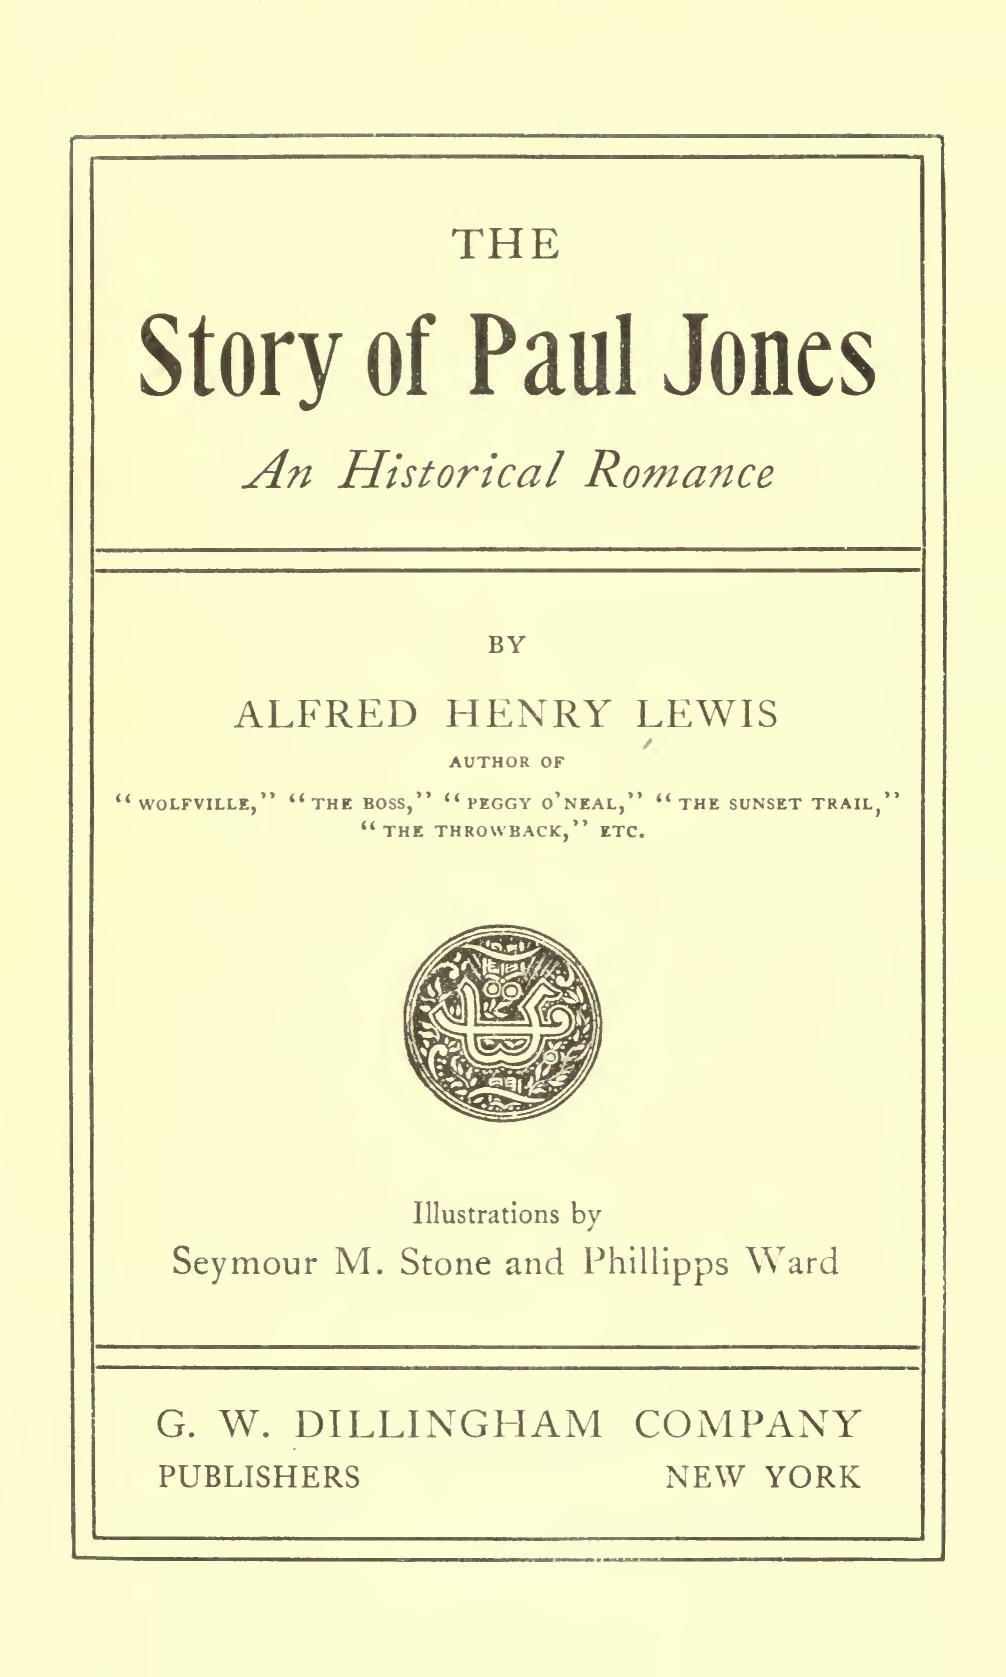 The Story of Paul Jones fbe659be11e9